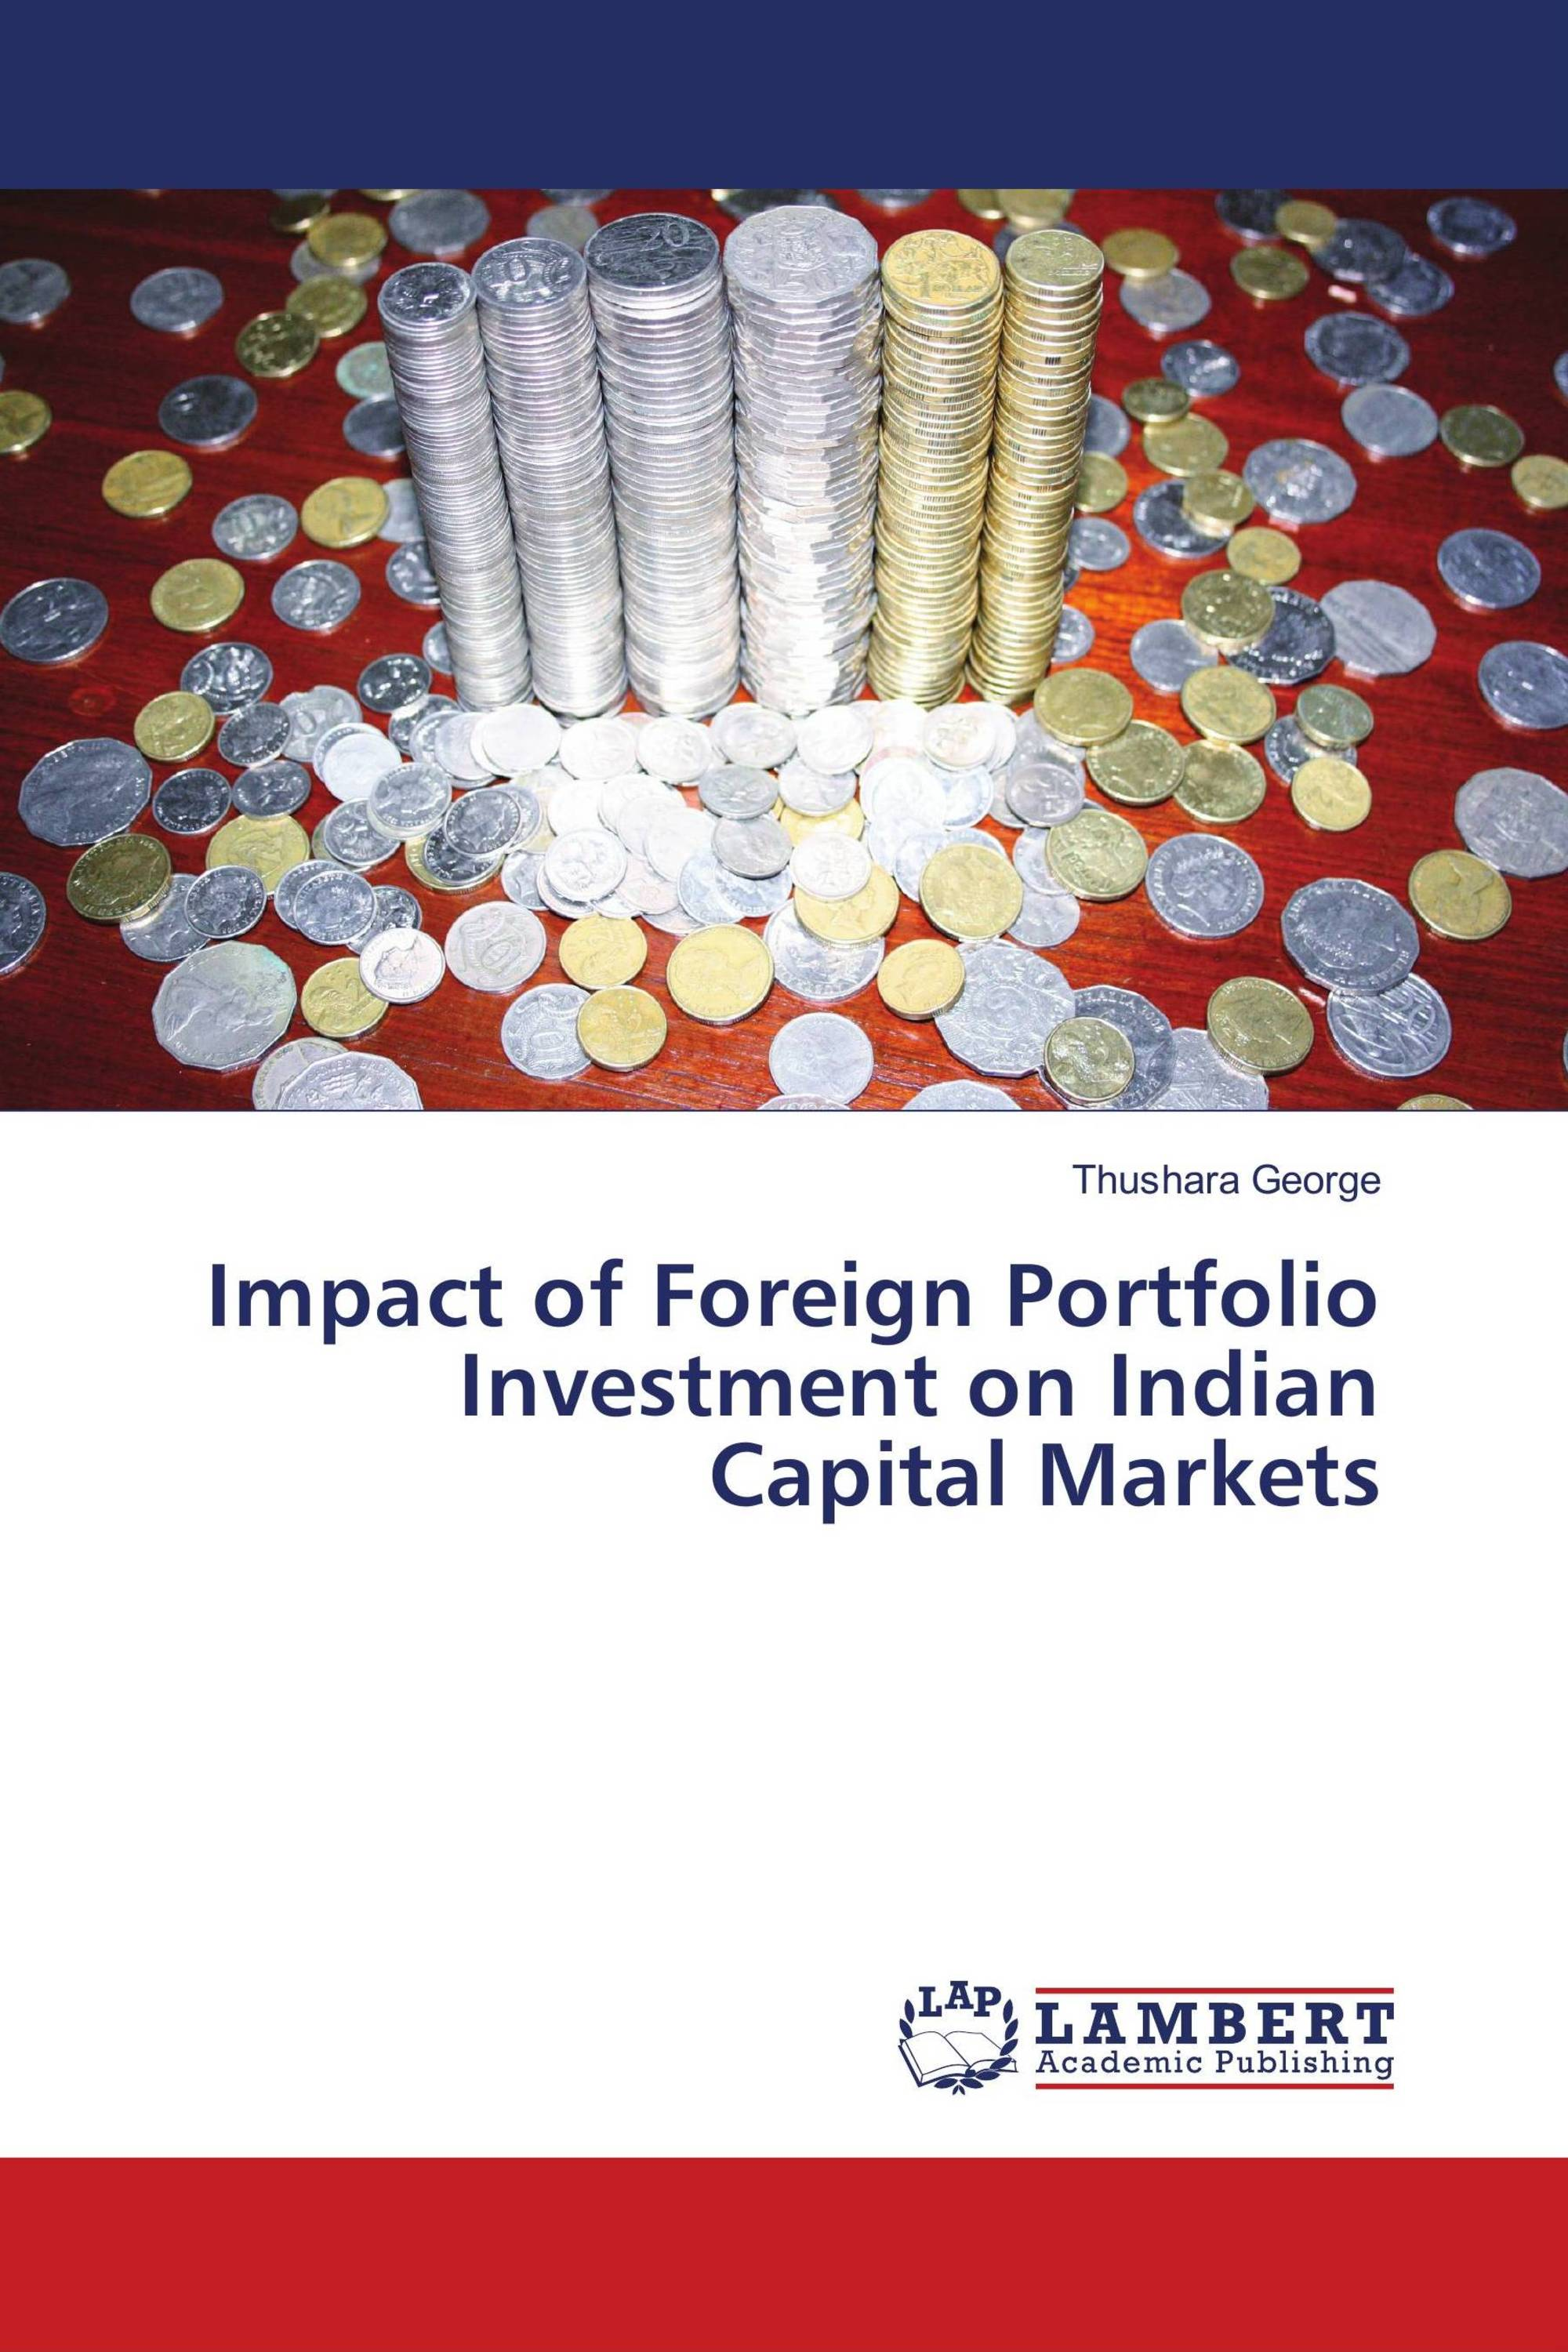 Impact of Foreign Portfolio Investment on Indian Capital